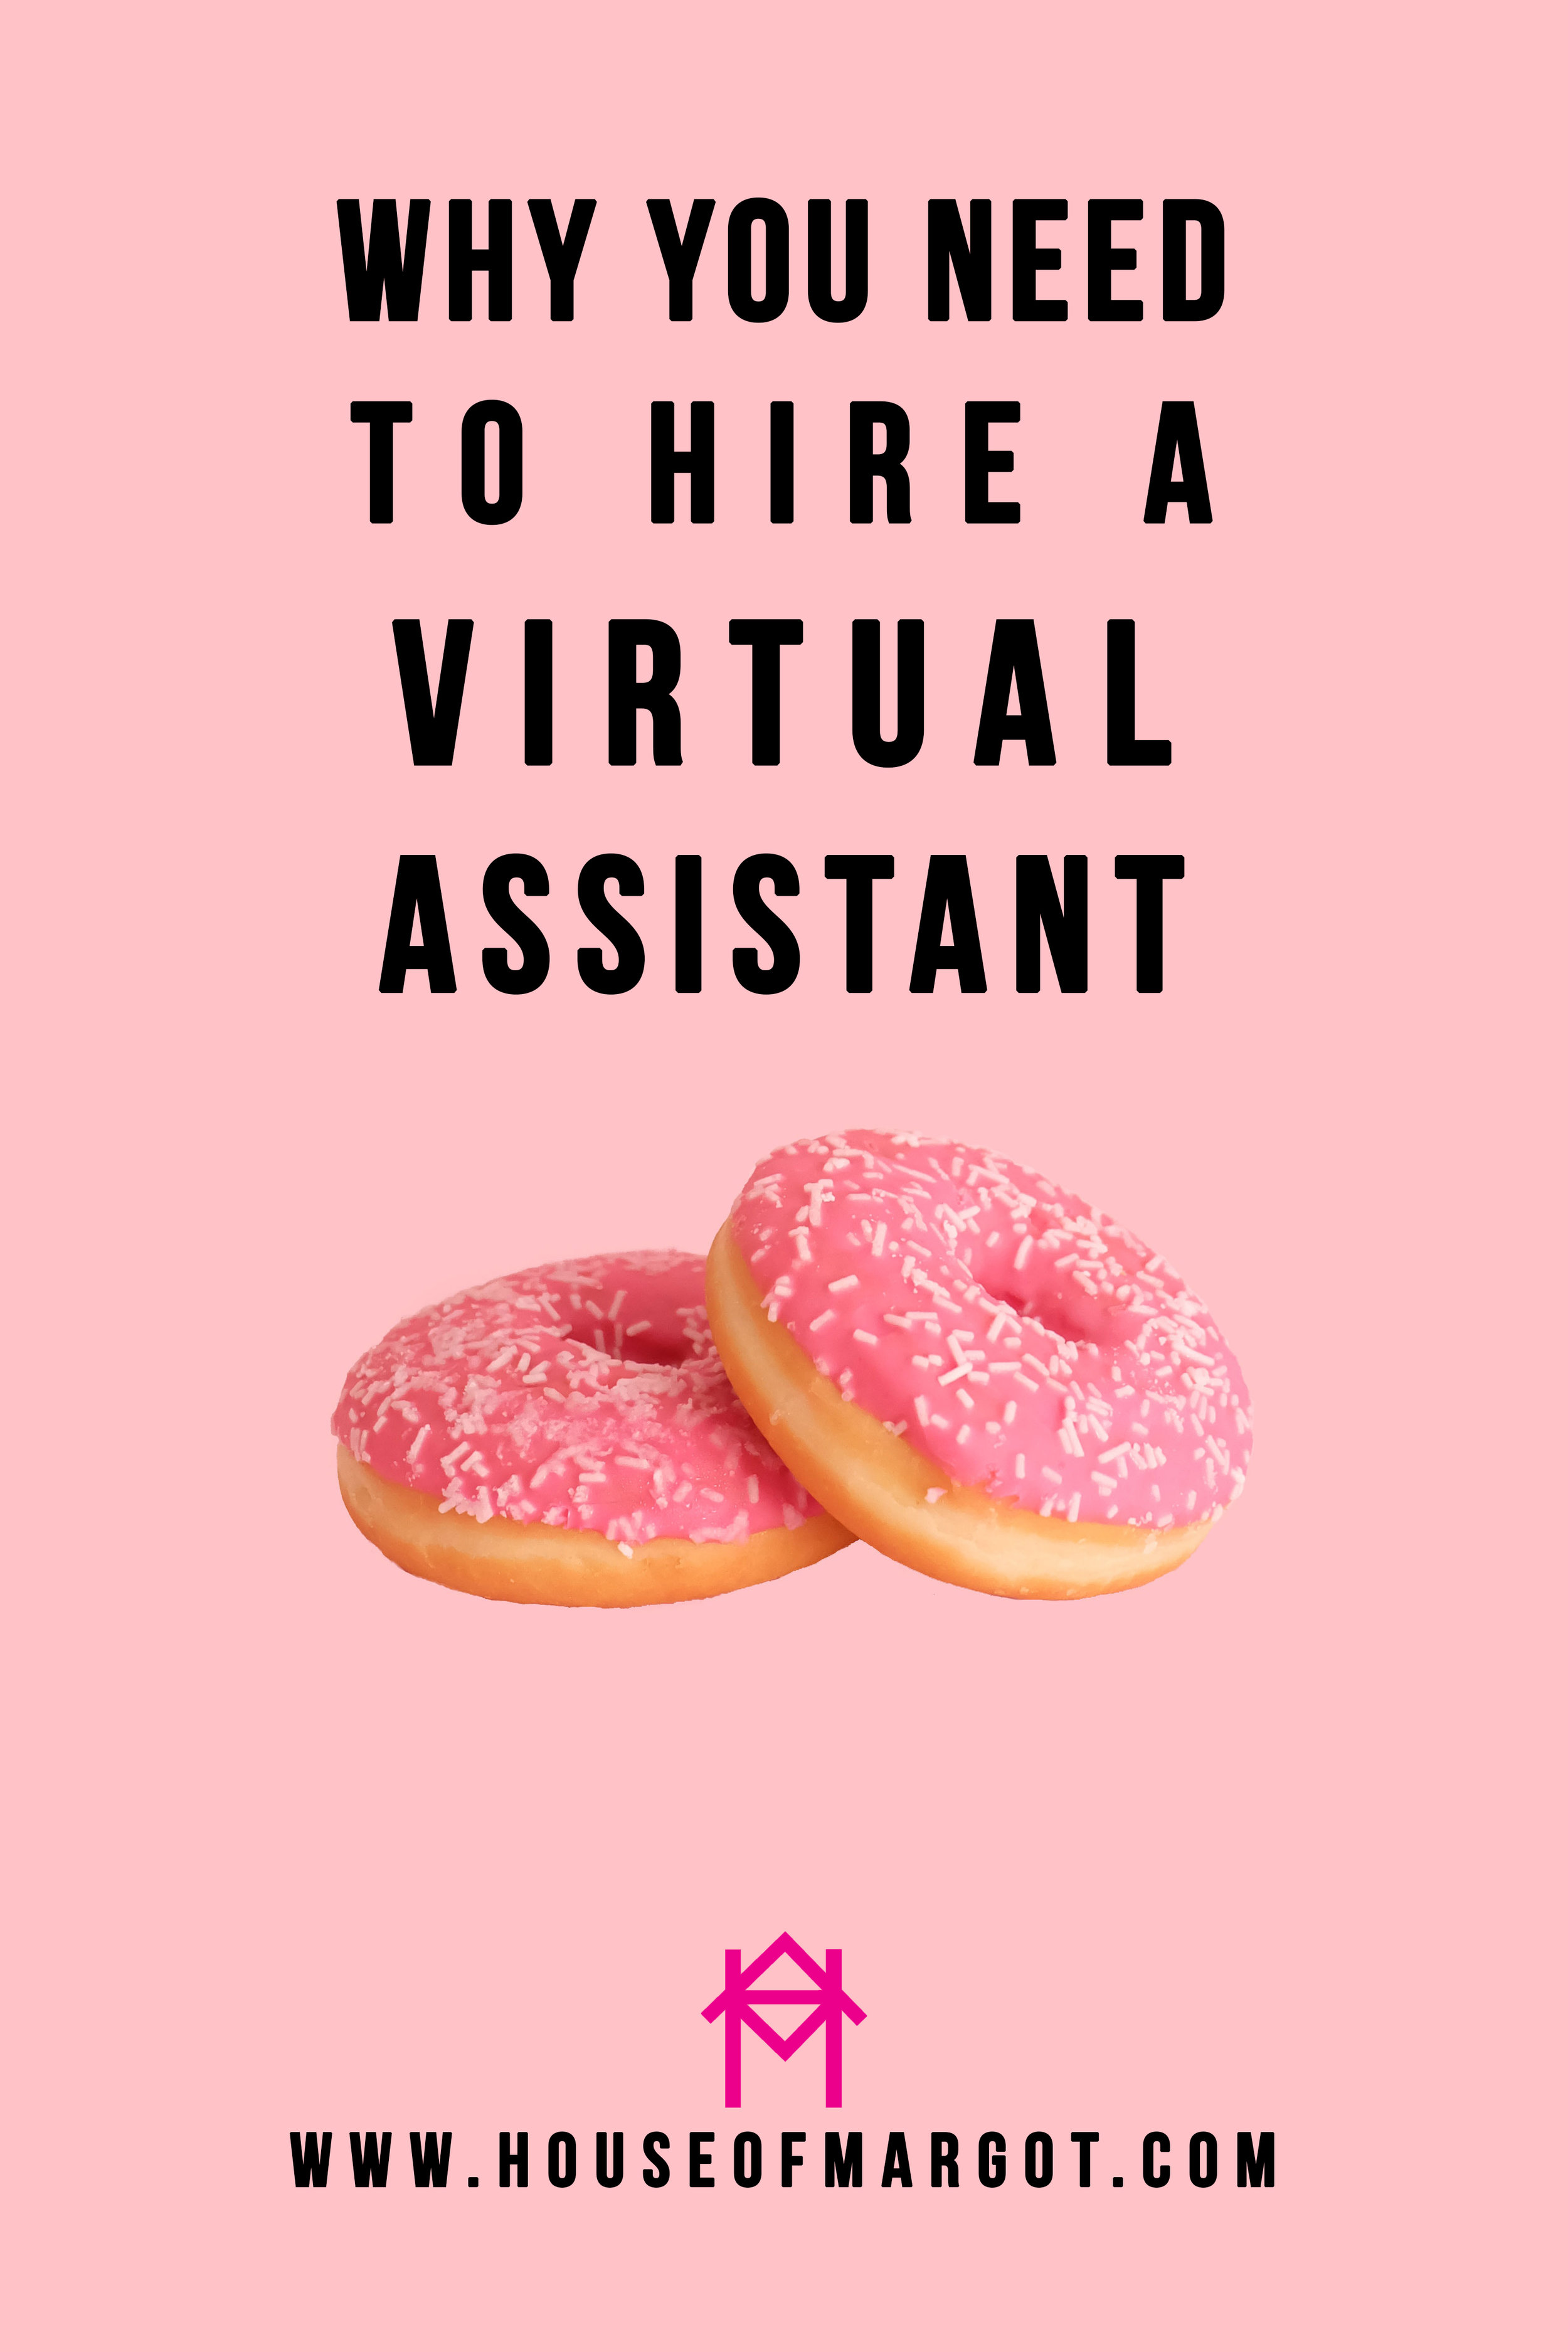 why-should-I-hire-a-virtual-assistant.jpg